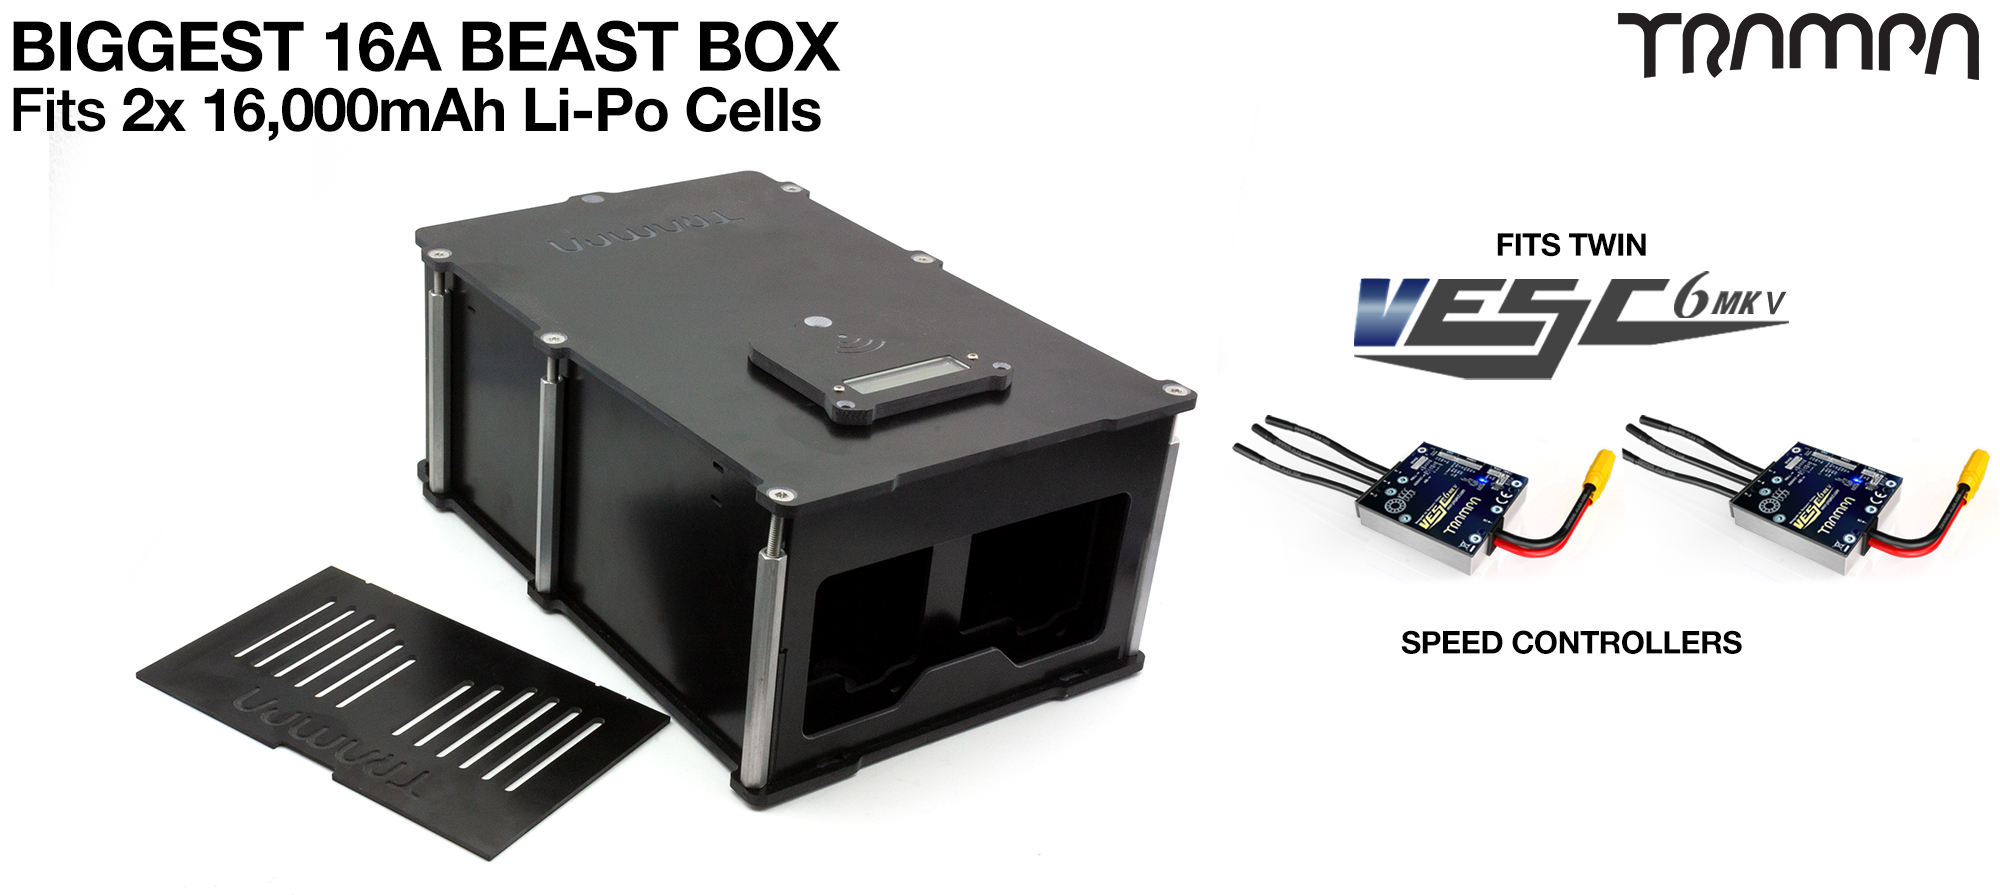 BEAST Box to fit 2x 6s 16000 mAh cells with Internal VESC Housing - TWIN Motor